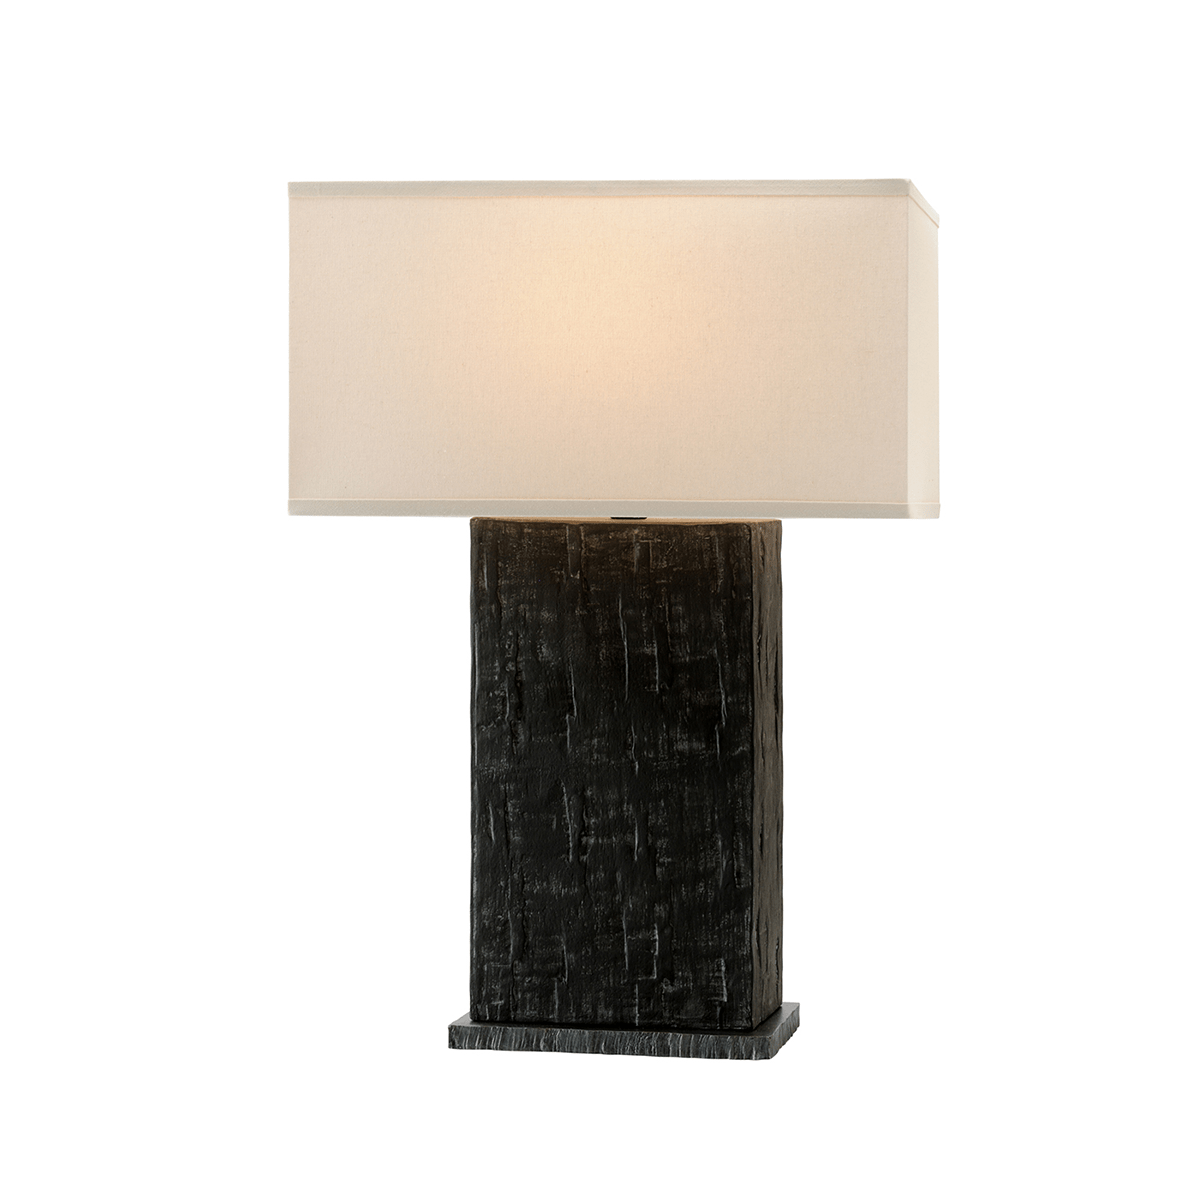 Troy Lighting La Brea Table Lamp in Anthracite